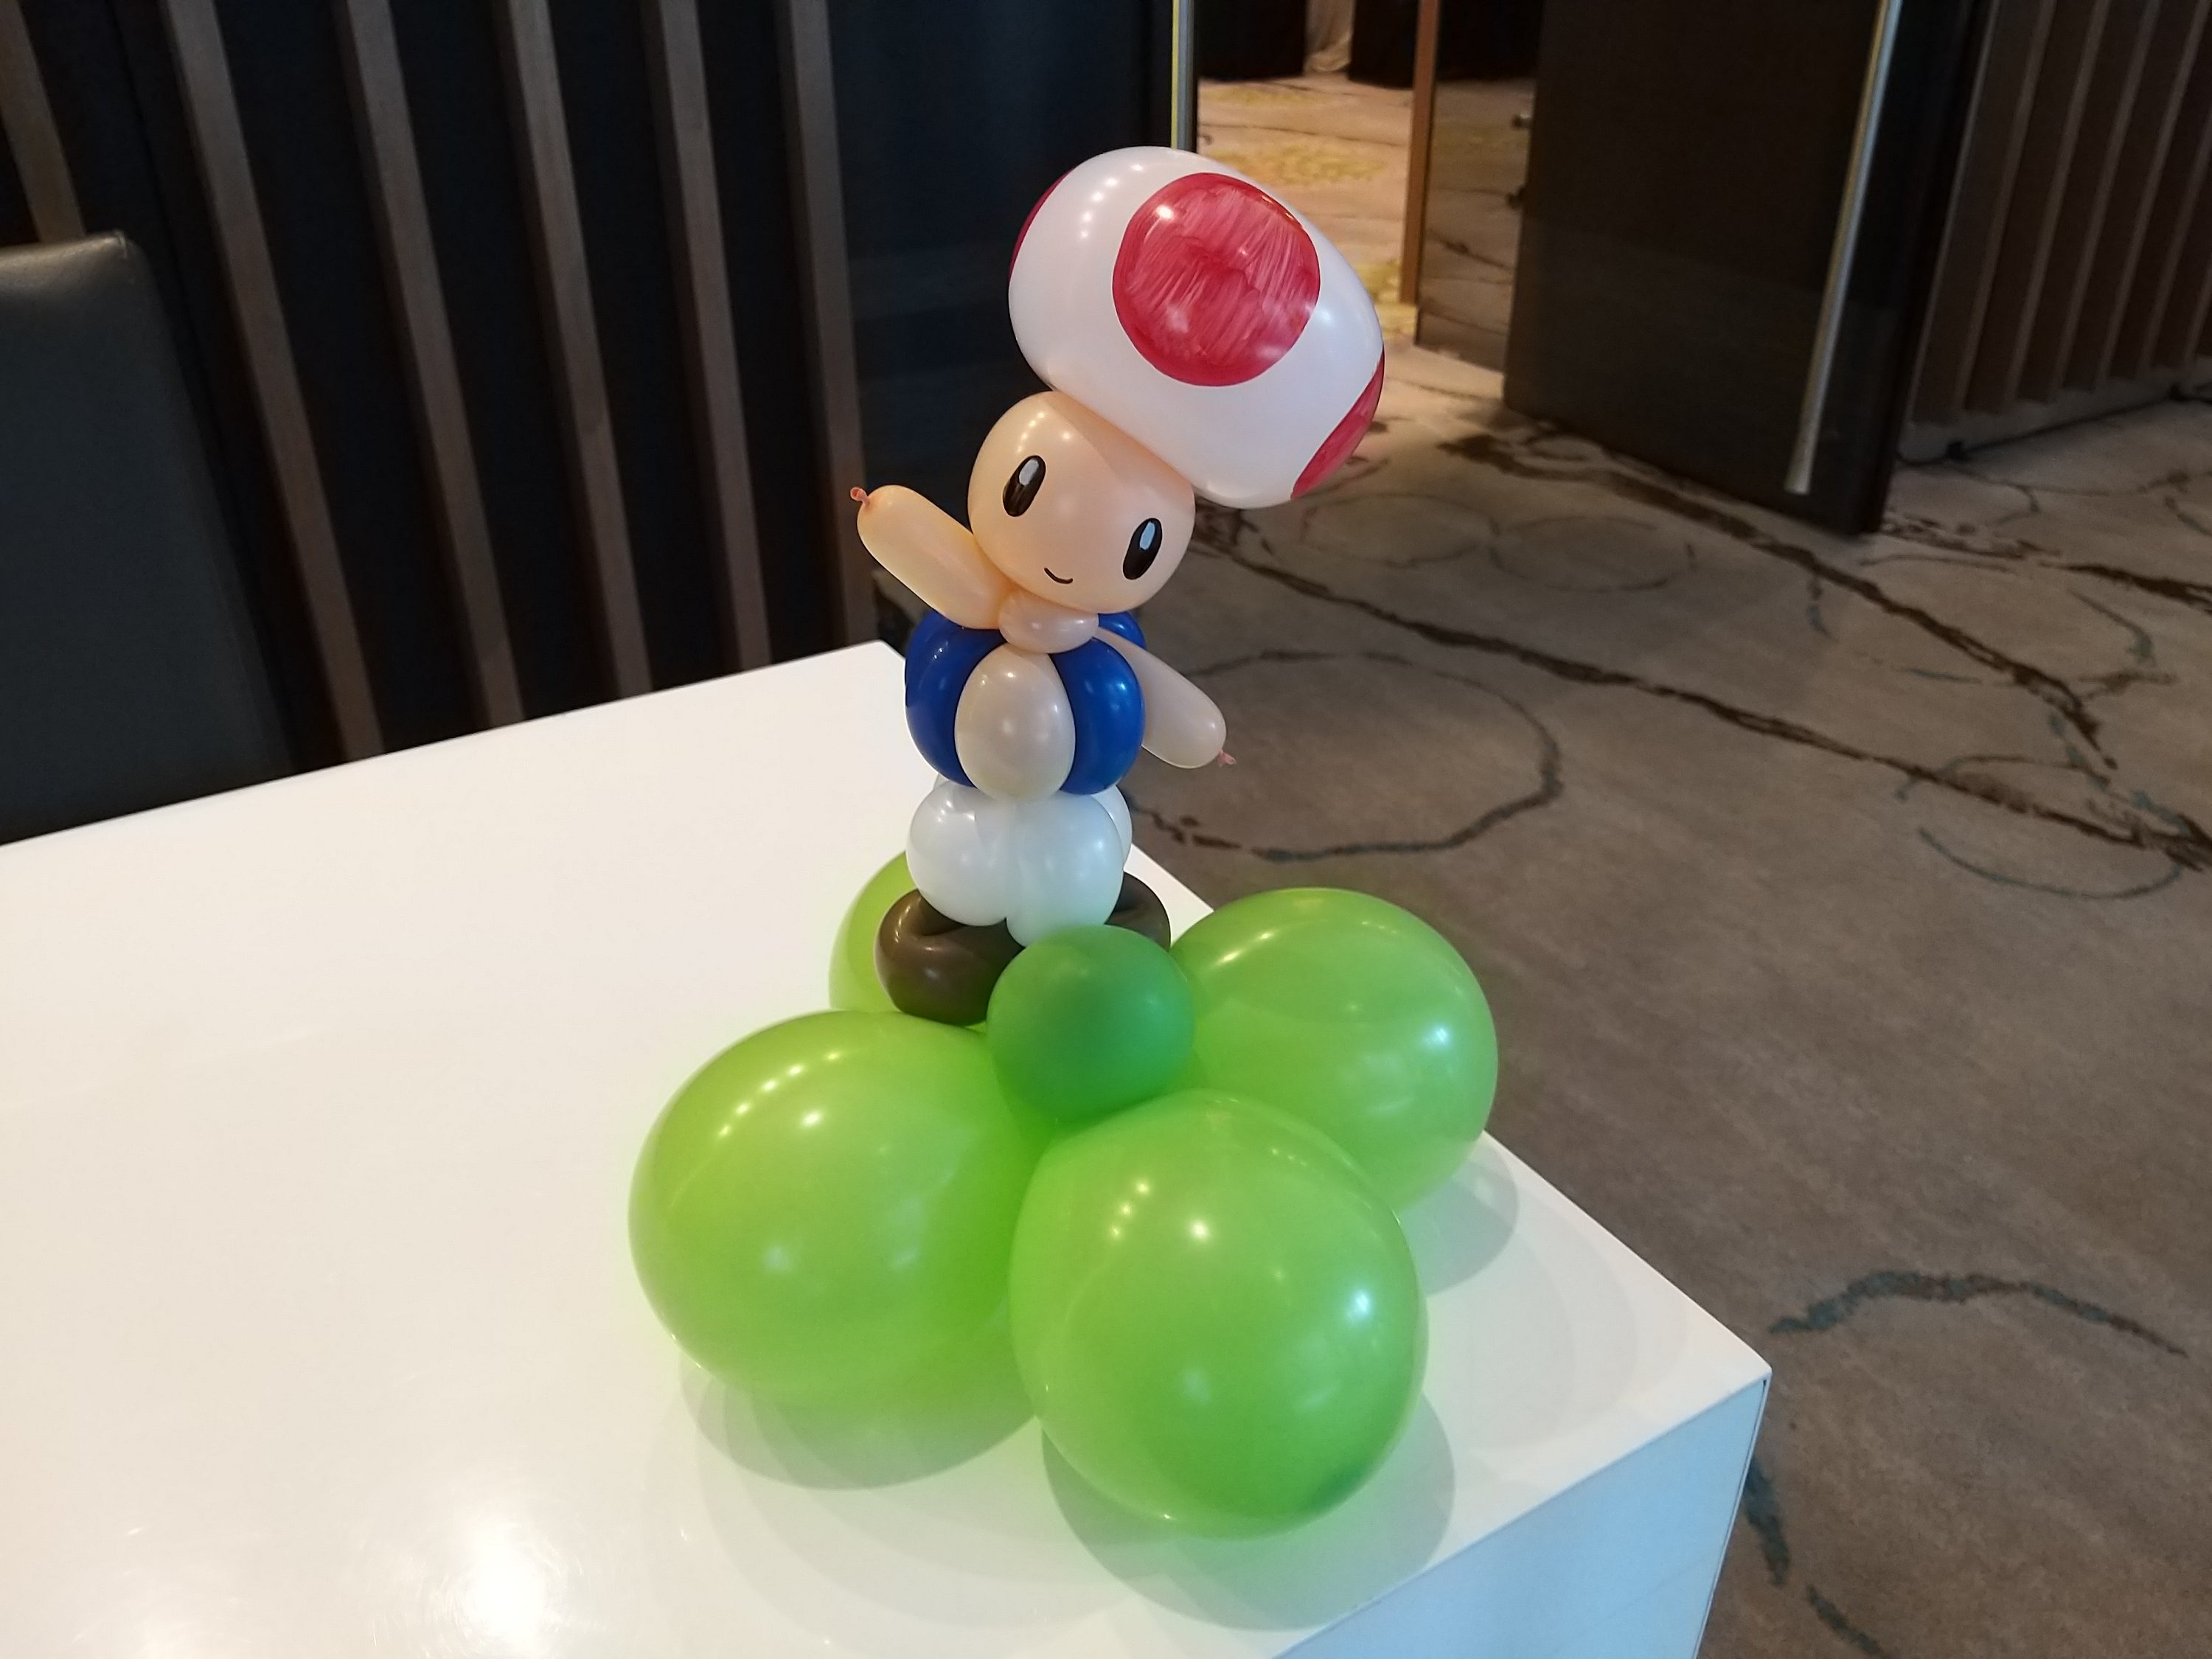 , Super Mario themed balloon table centerpieces decorations, Singapore Balloon Decoration Services - Balloon Workshop and Balloon Sculpting